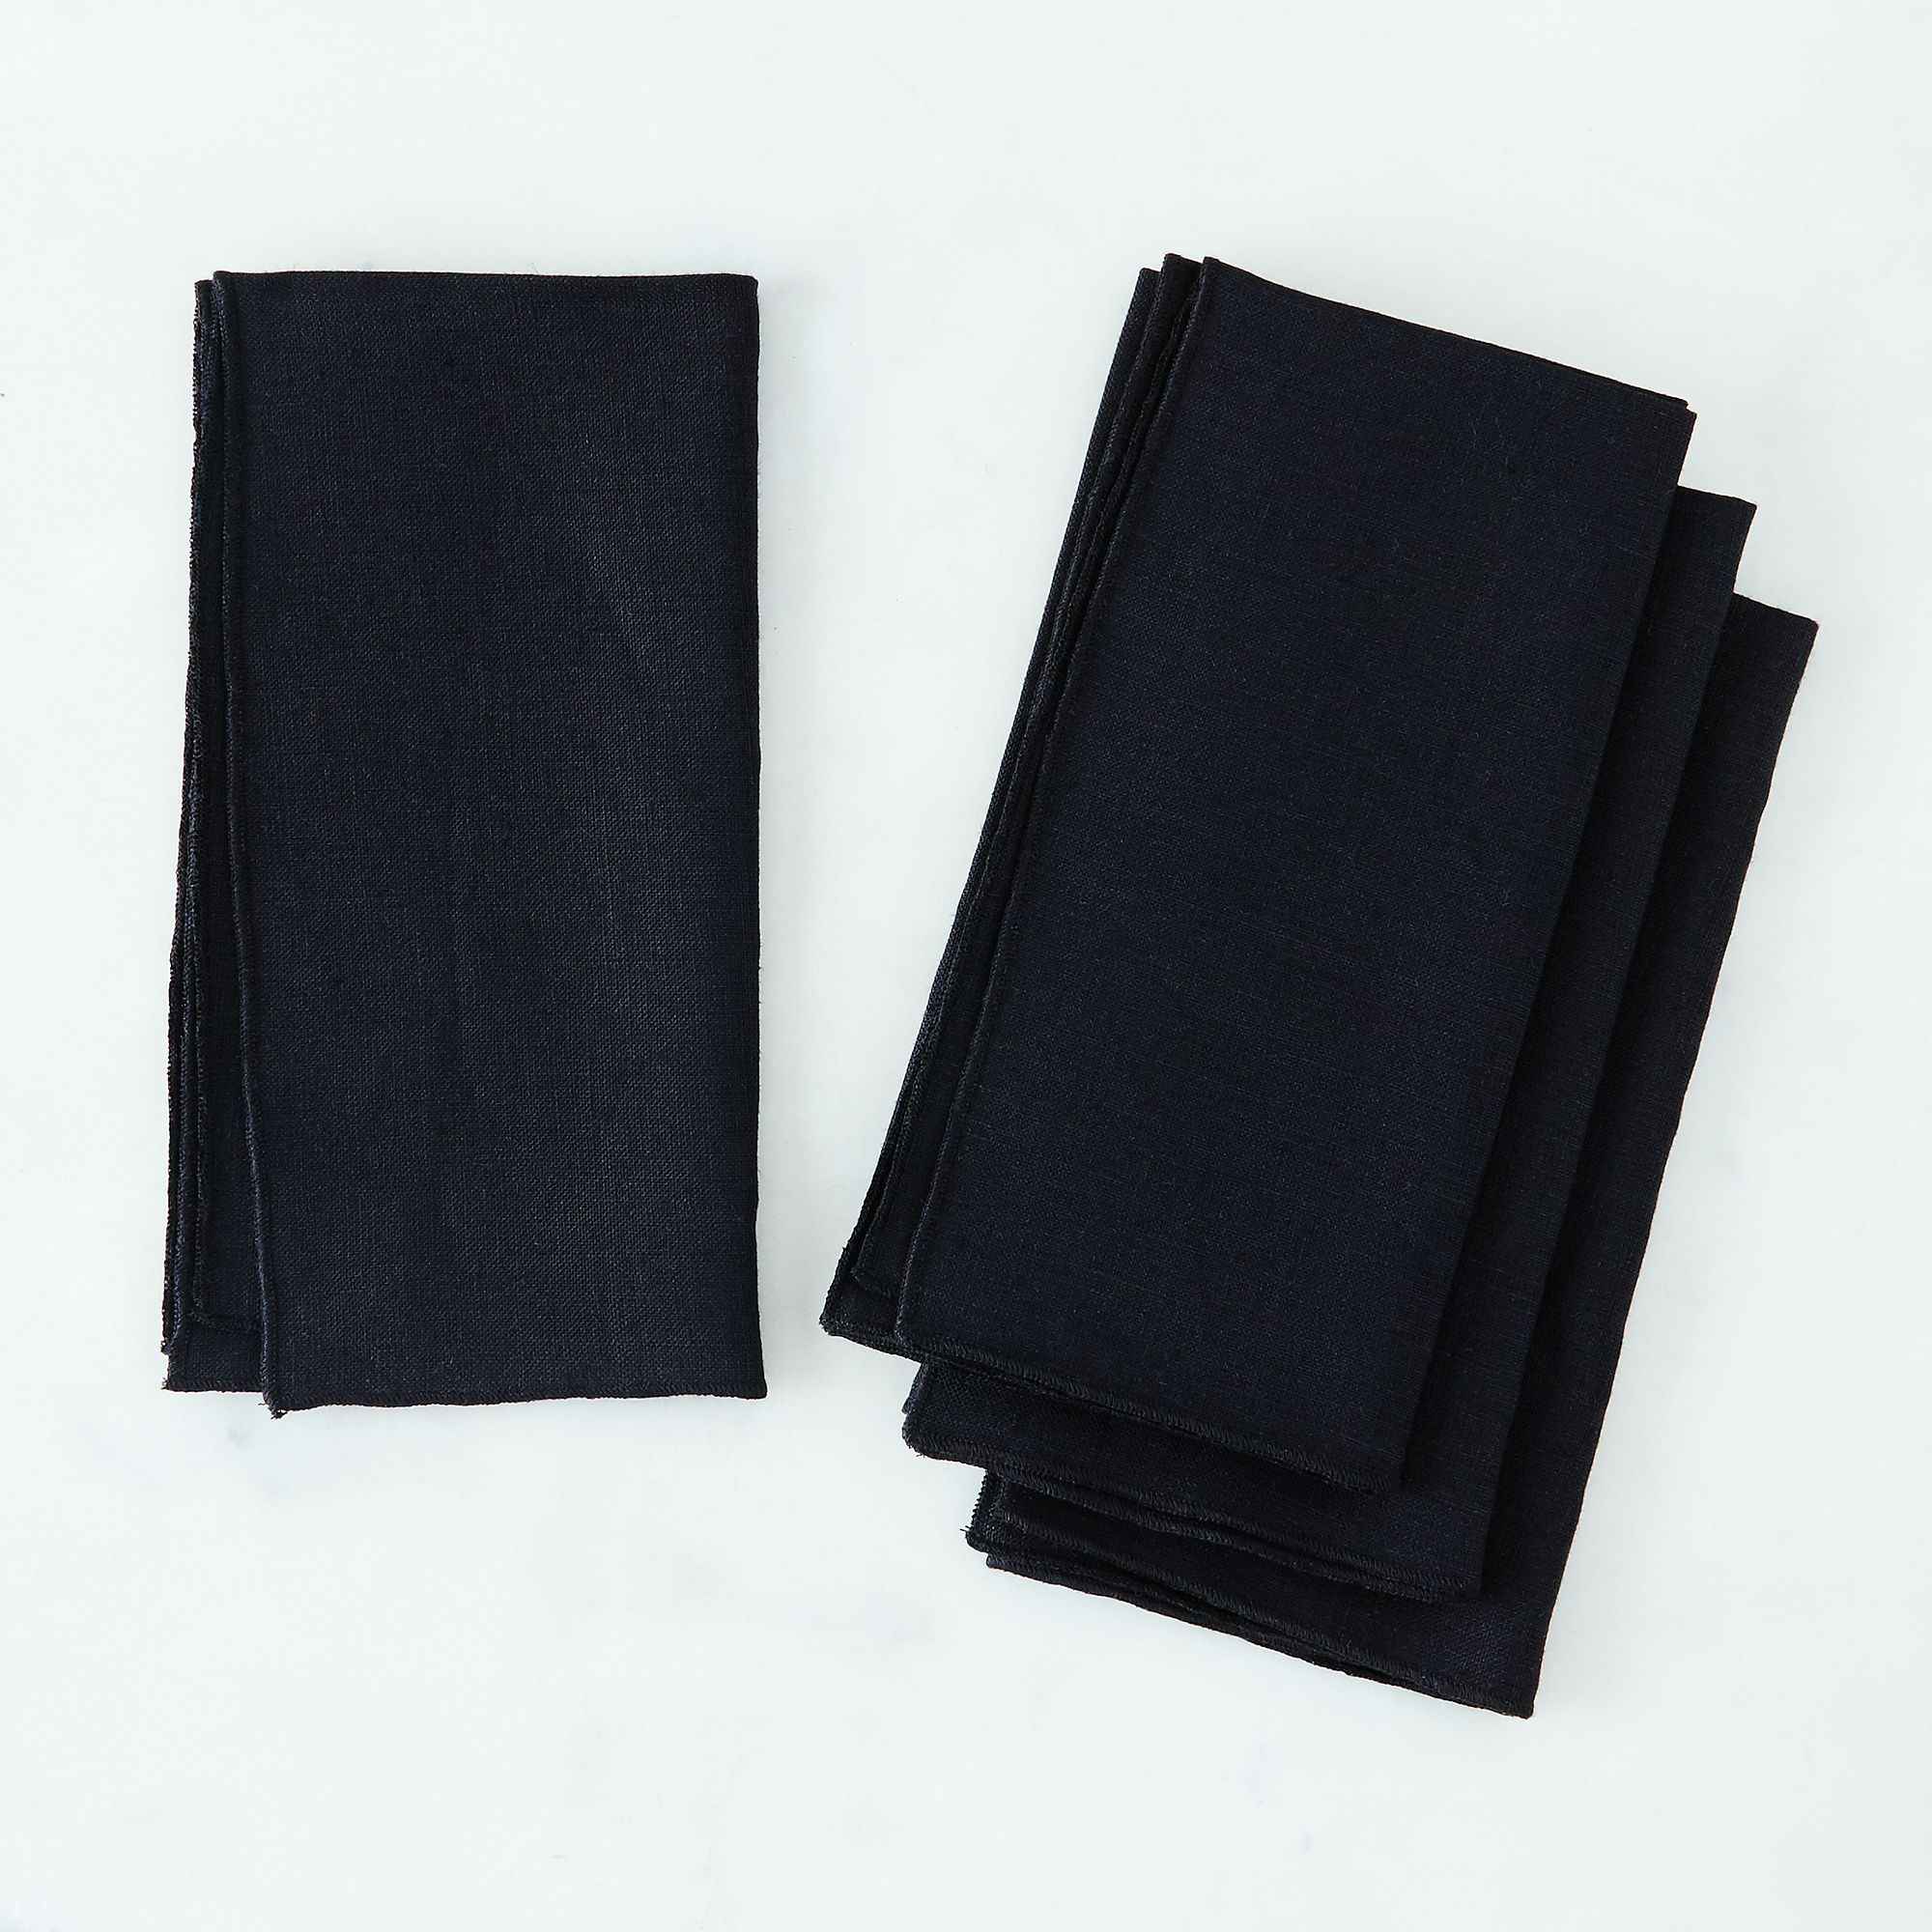 1f441682 a0f9 11e5 a190 0ef7535729df  2015 0930 dot and army black linen napkins silo rocky luten 004